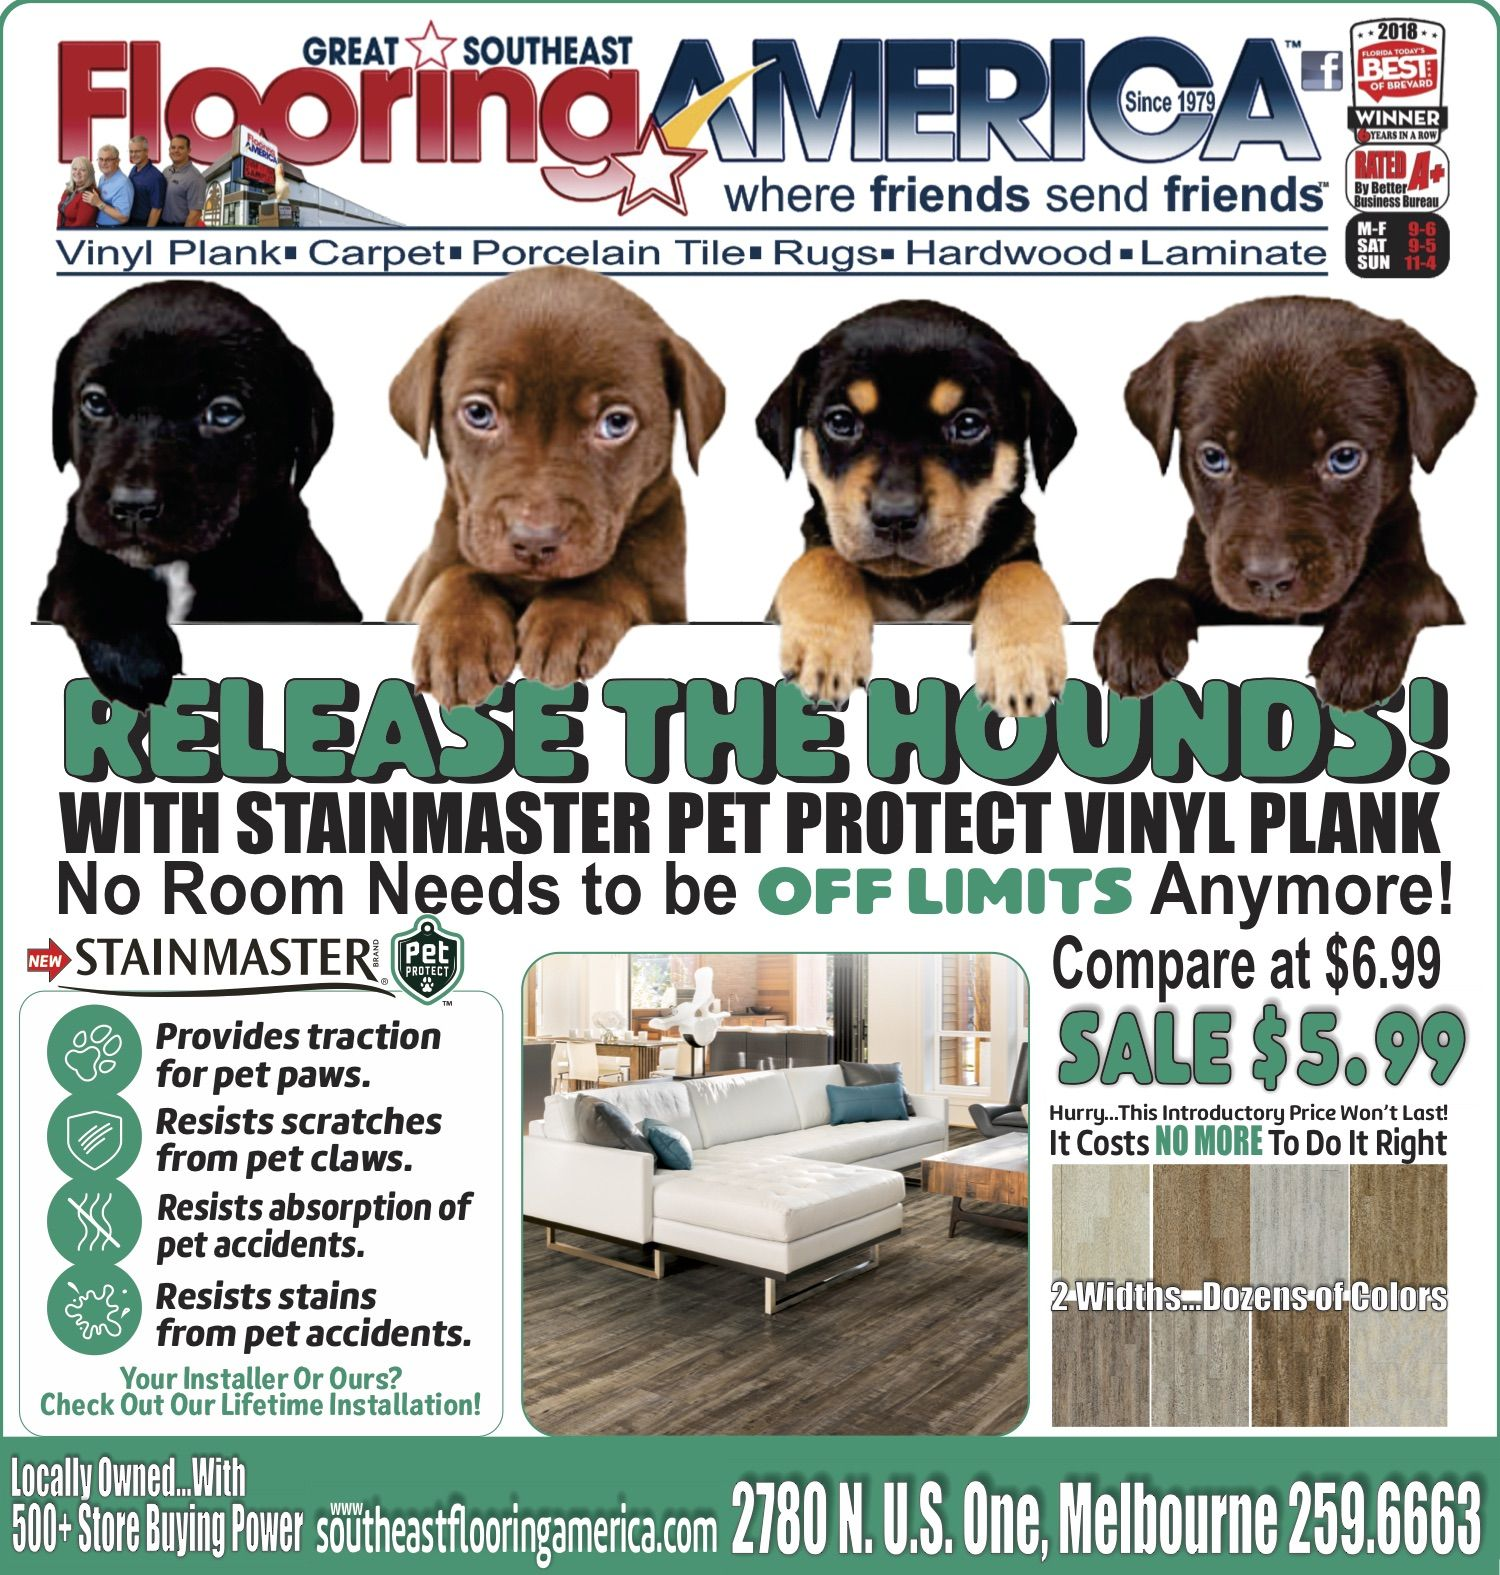 No Room Is Off Limits With Stainmaster S Pet Protect Vinylplank Stainmaster Vinyl Plank Pets